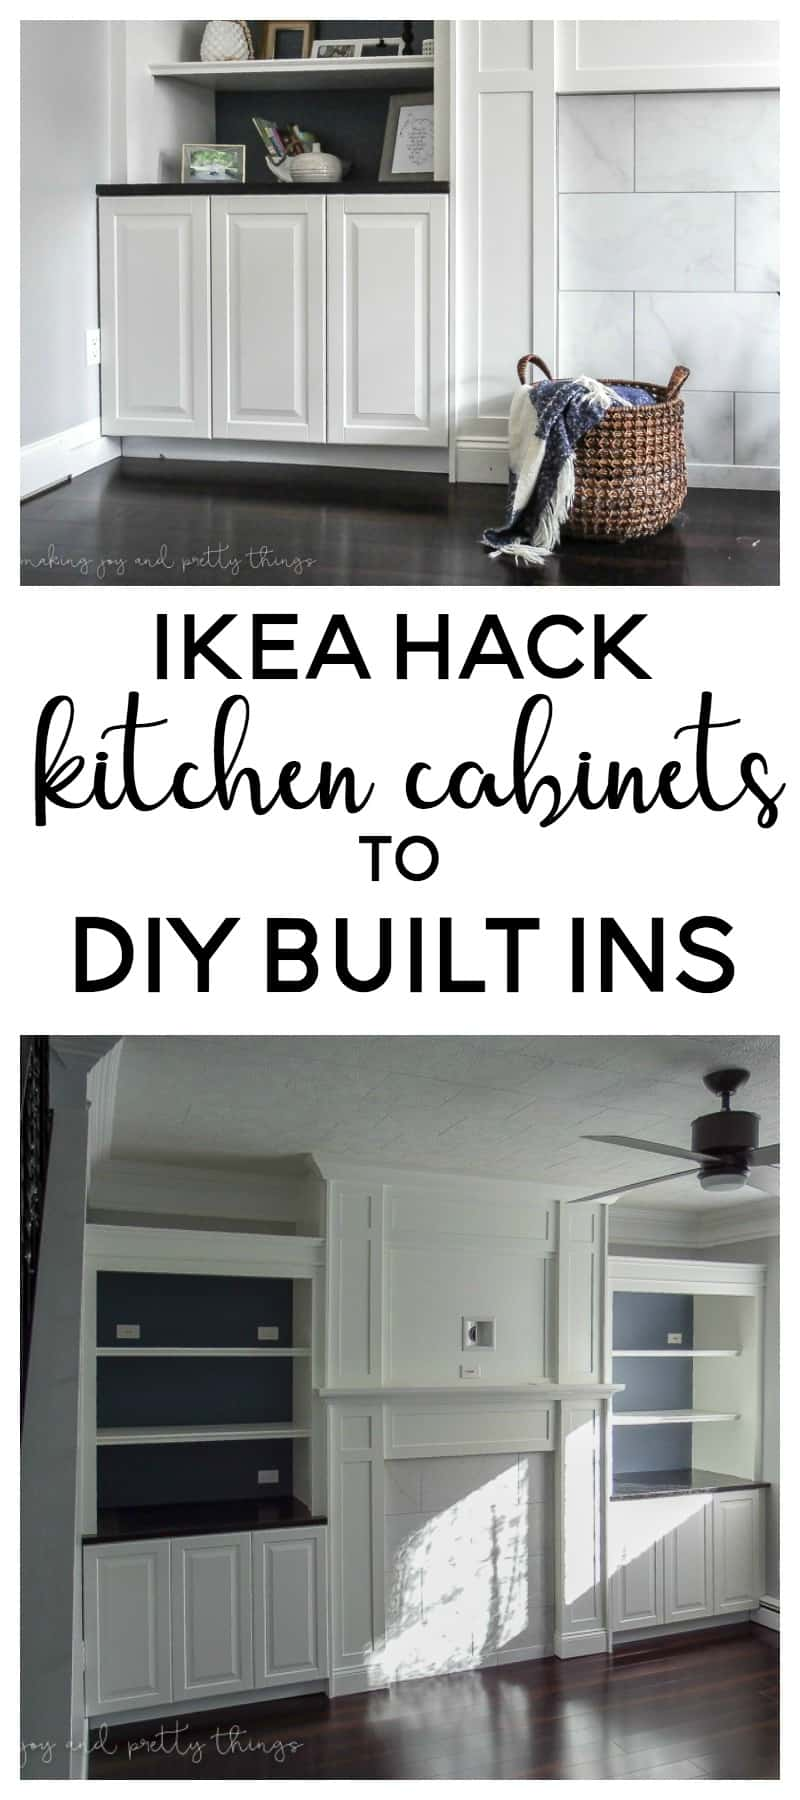 ikea hack kitchen cabinets turned built ins. Black Bedroom Furniture Sets. Home Design Ideas